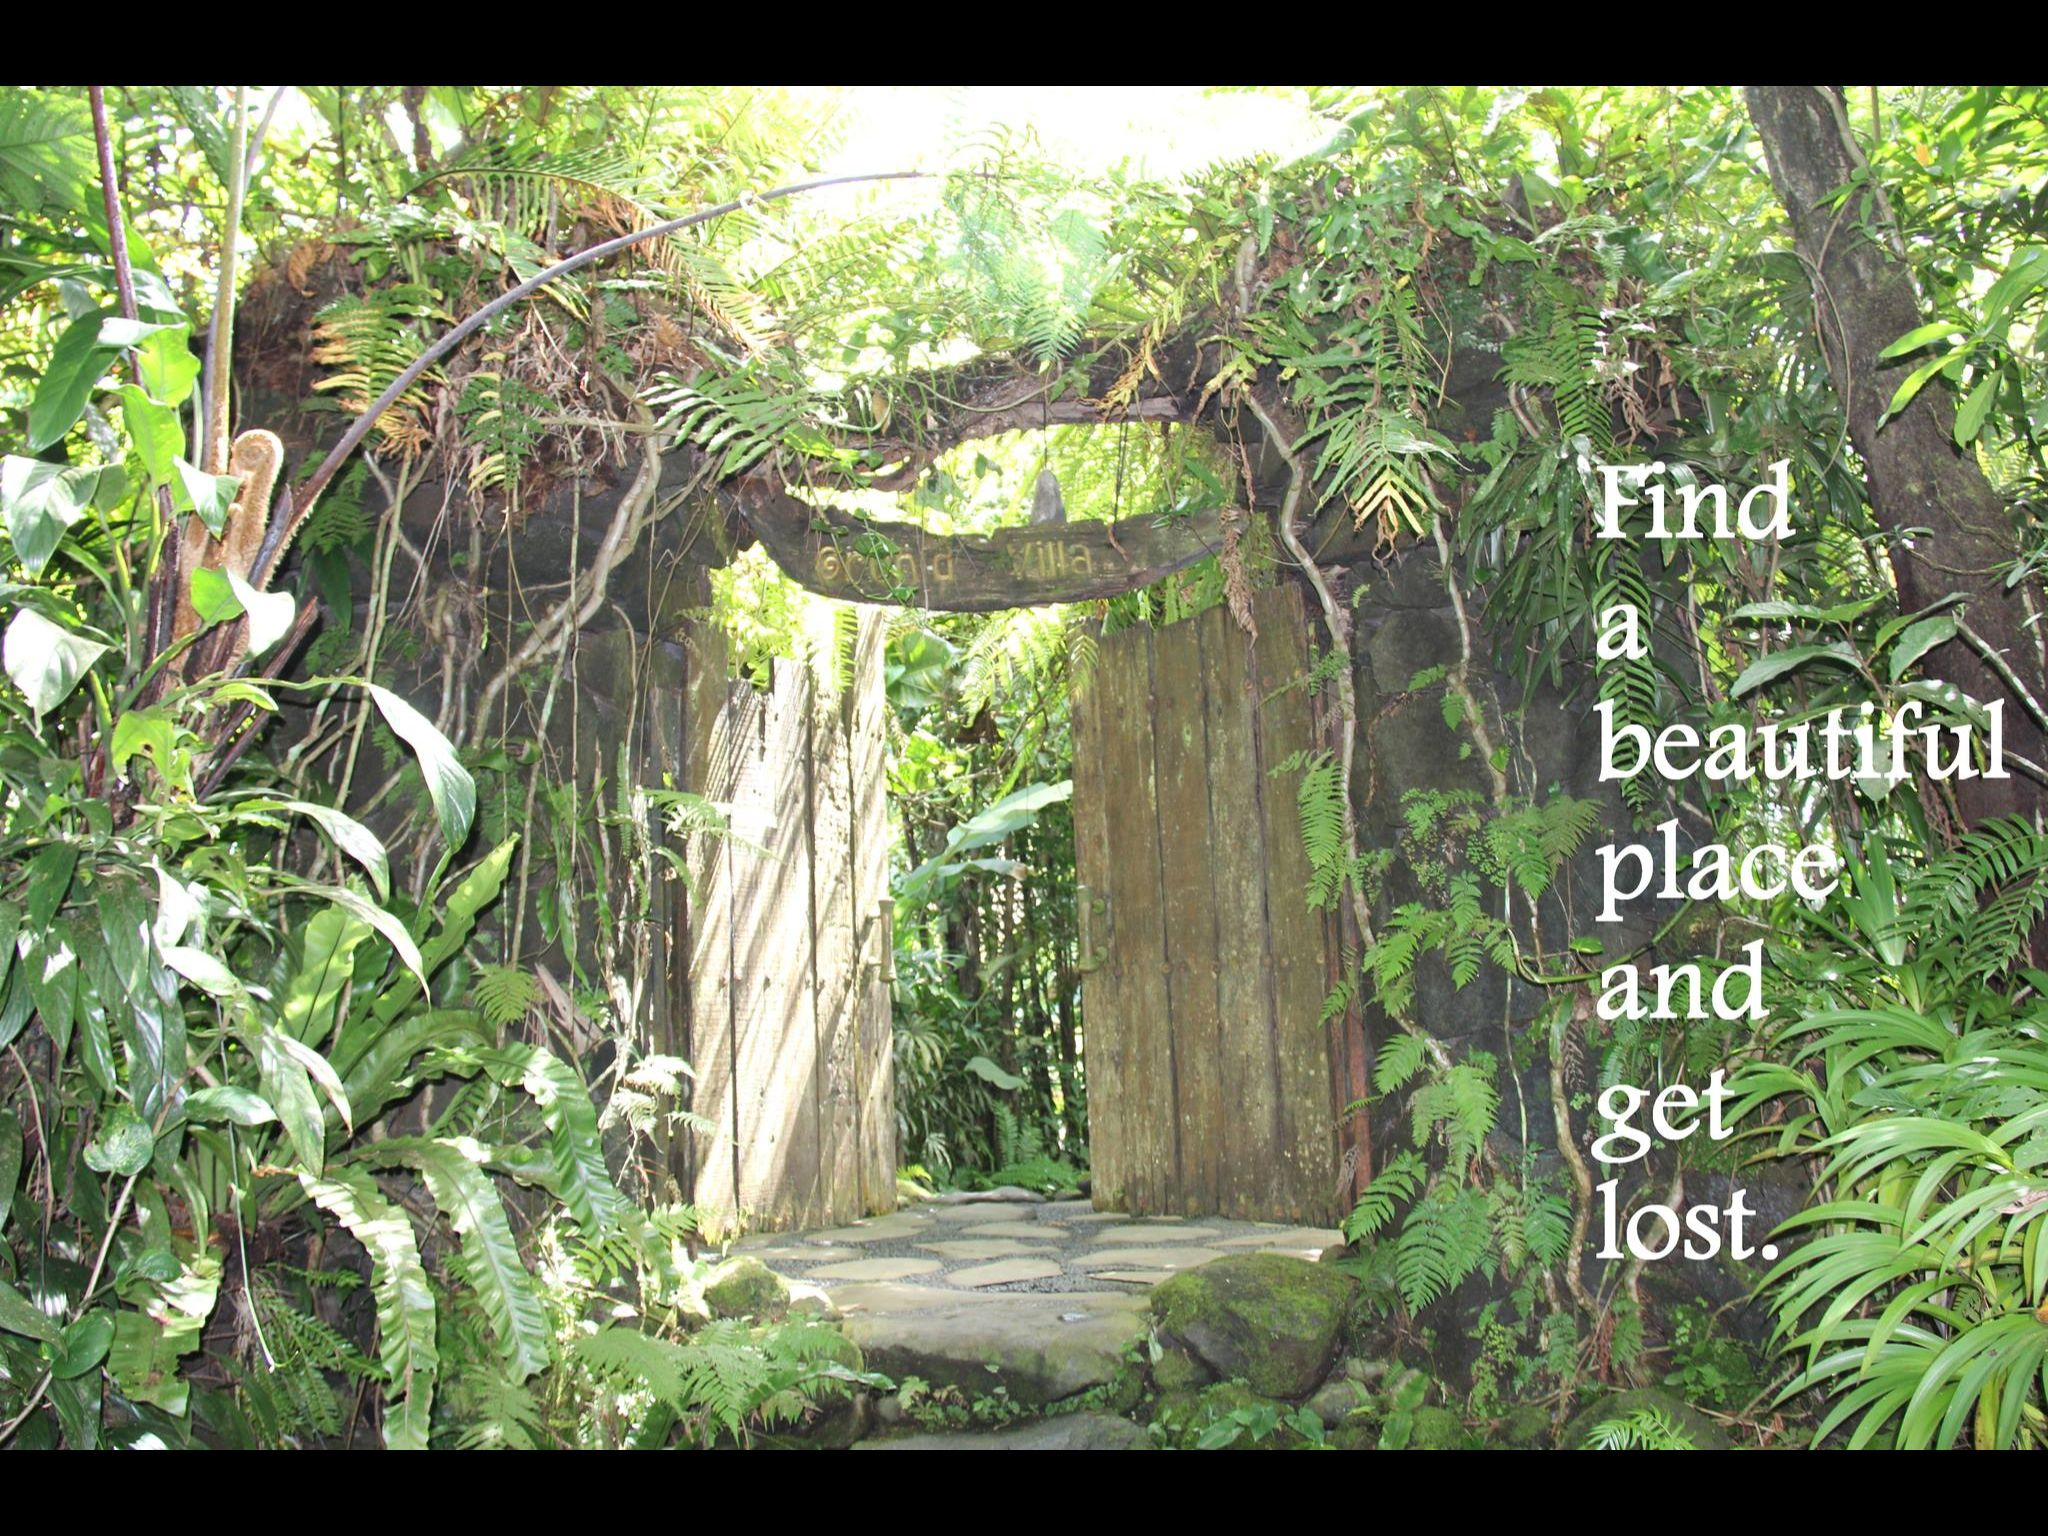 Find a beautiful place, and get lost!